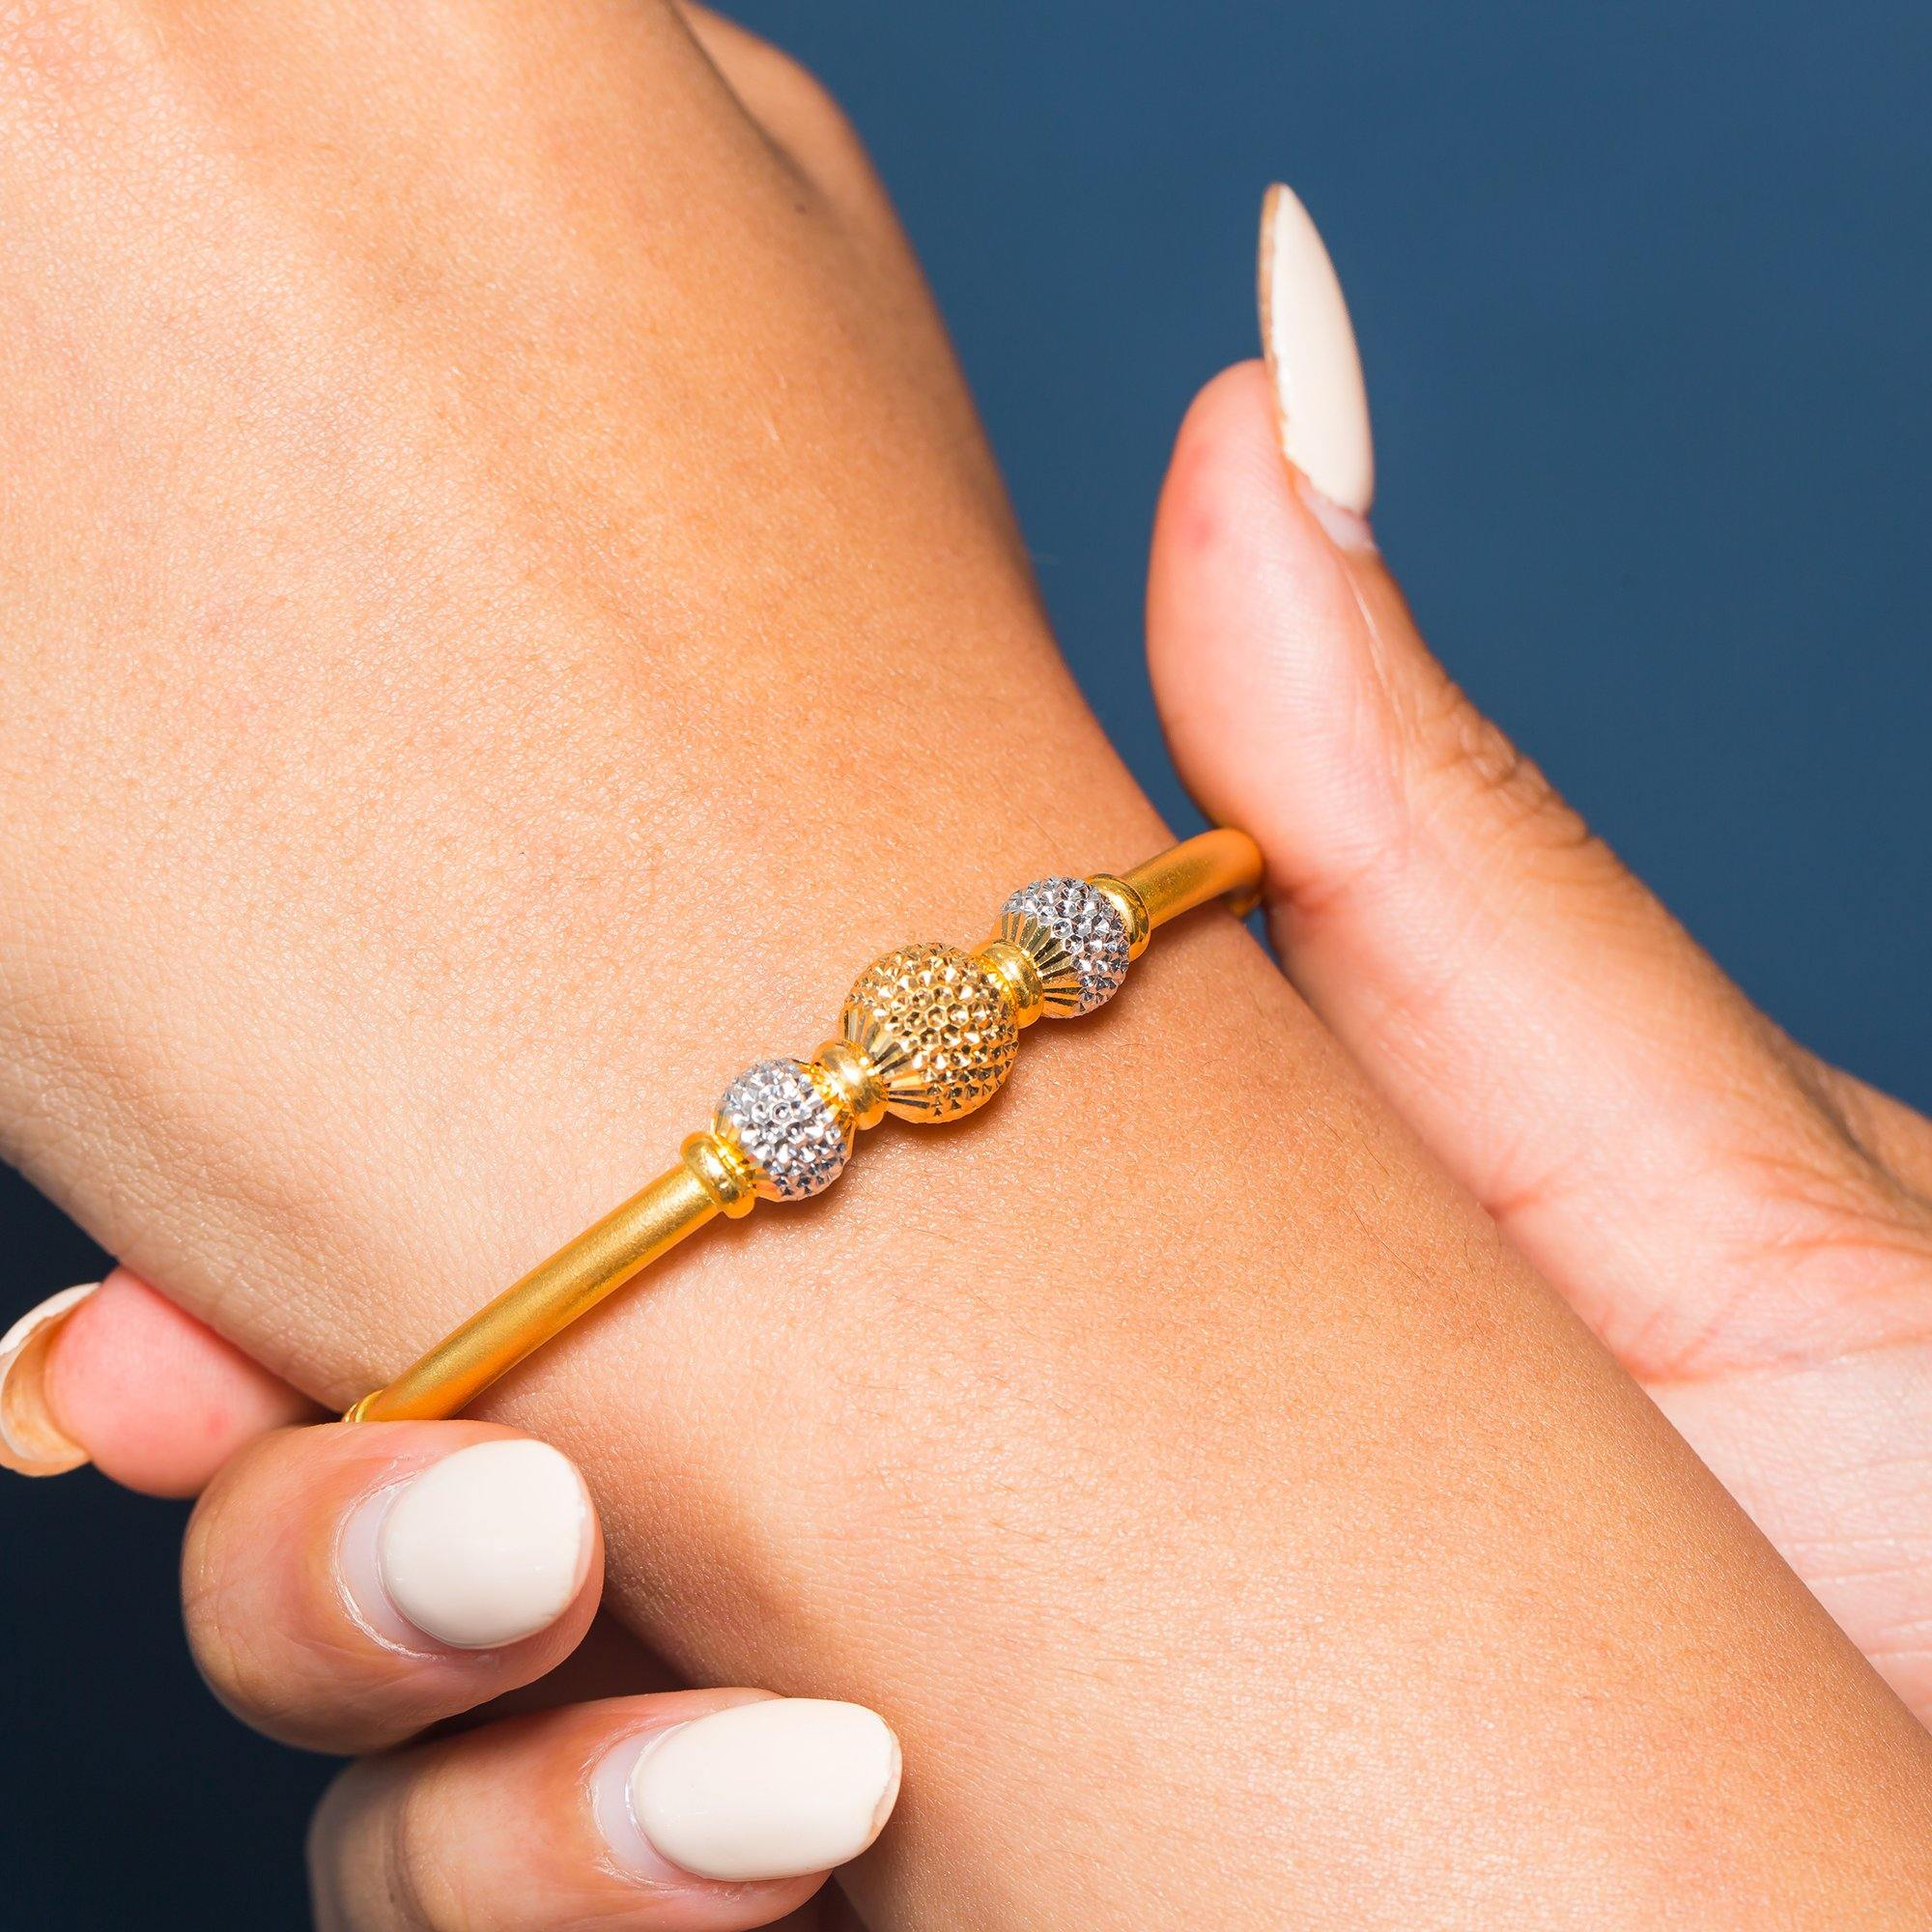 22K Multi Tone Gold Bangle W/ 3 Accent Dimpled Balls